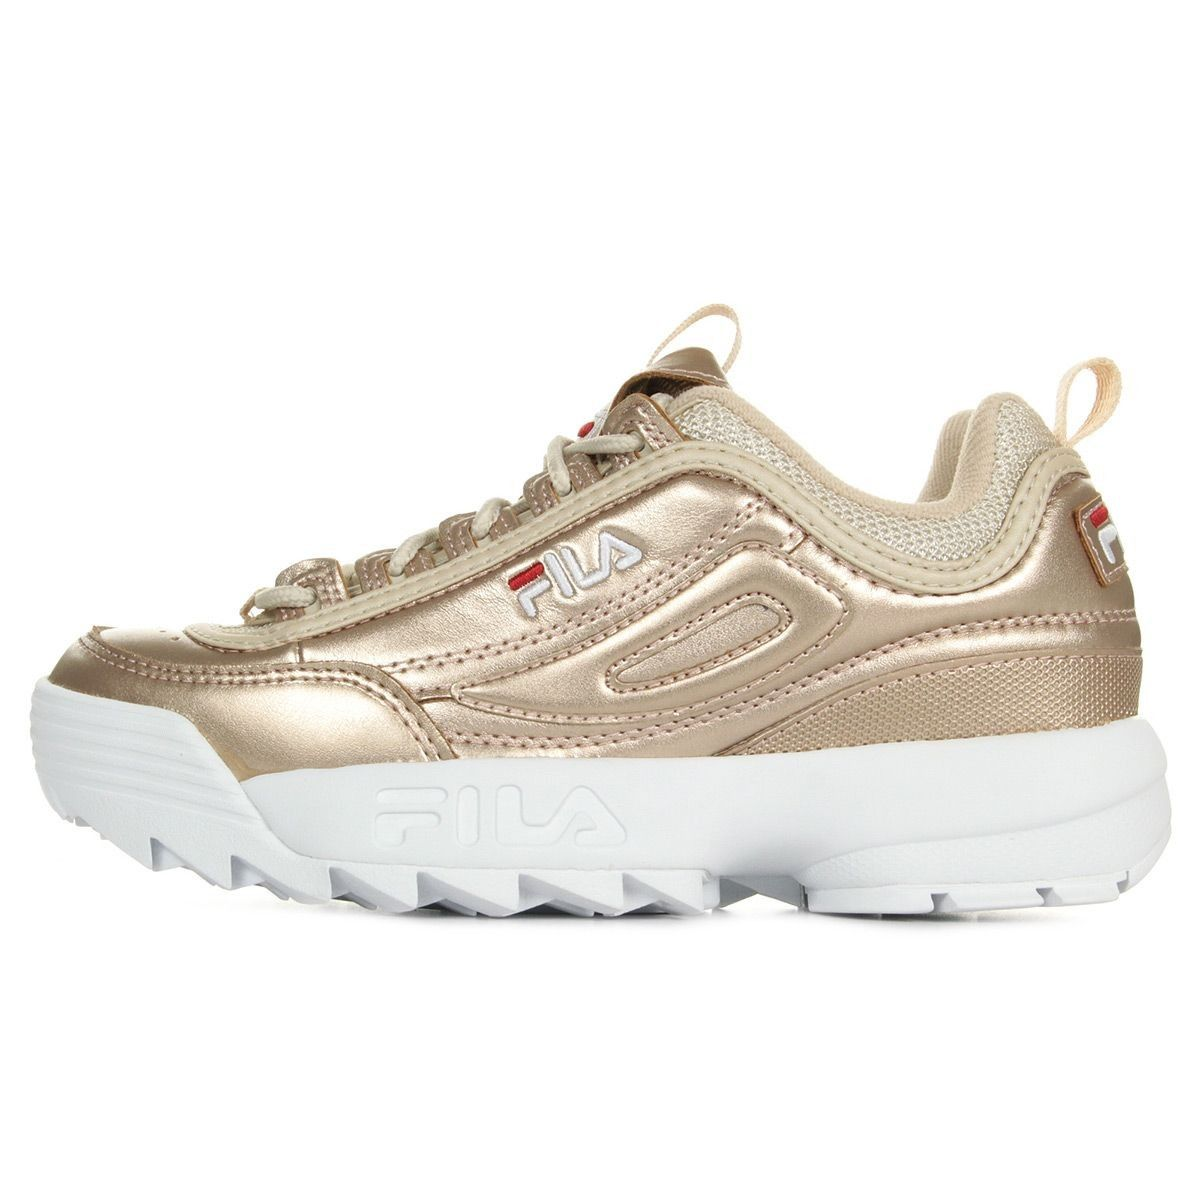 info for e899c 69cbe Basket Femme Fila Disruptor Mm Gold - Taille   36 37 38 39 40 41